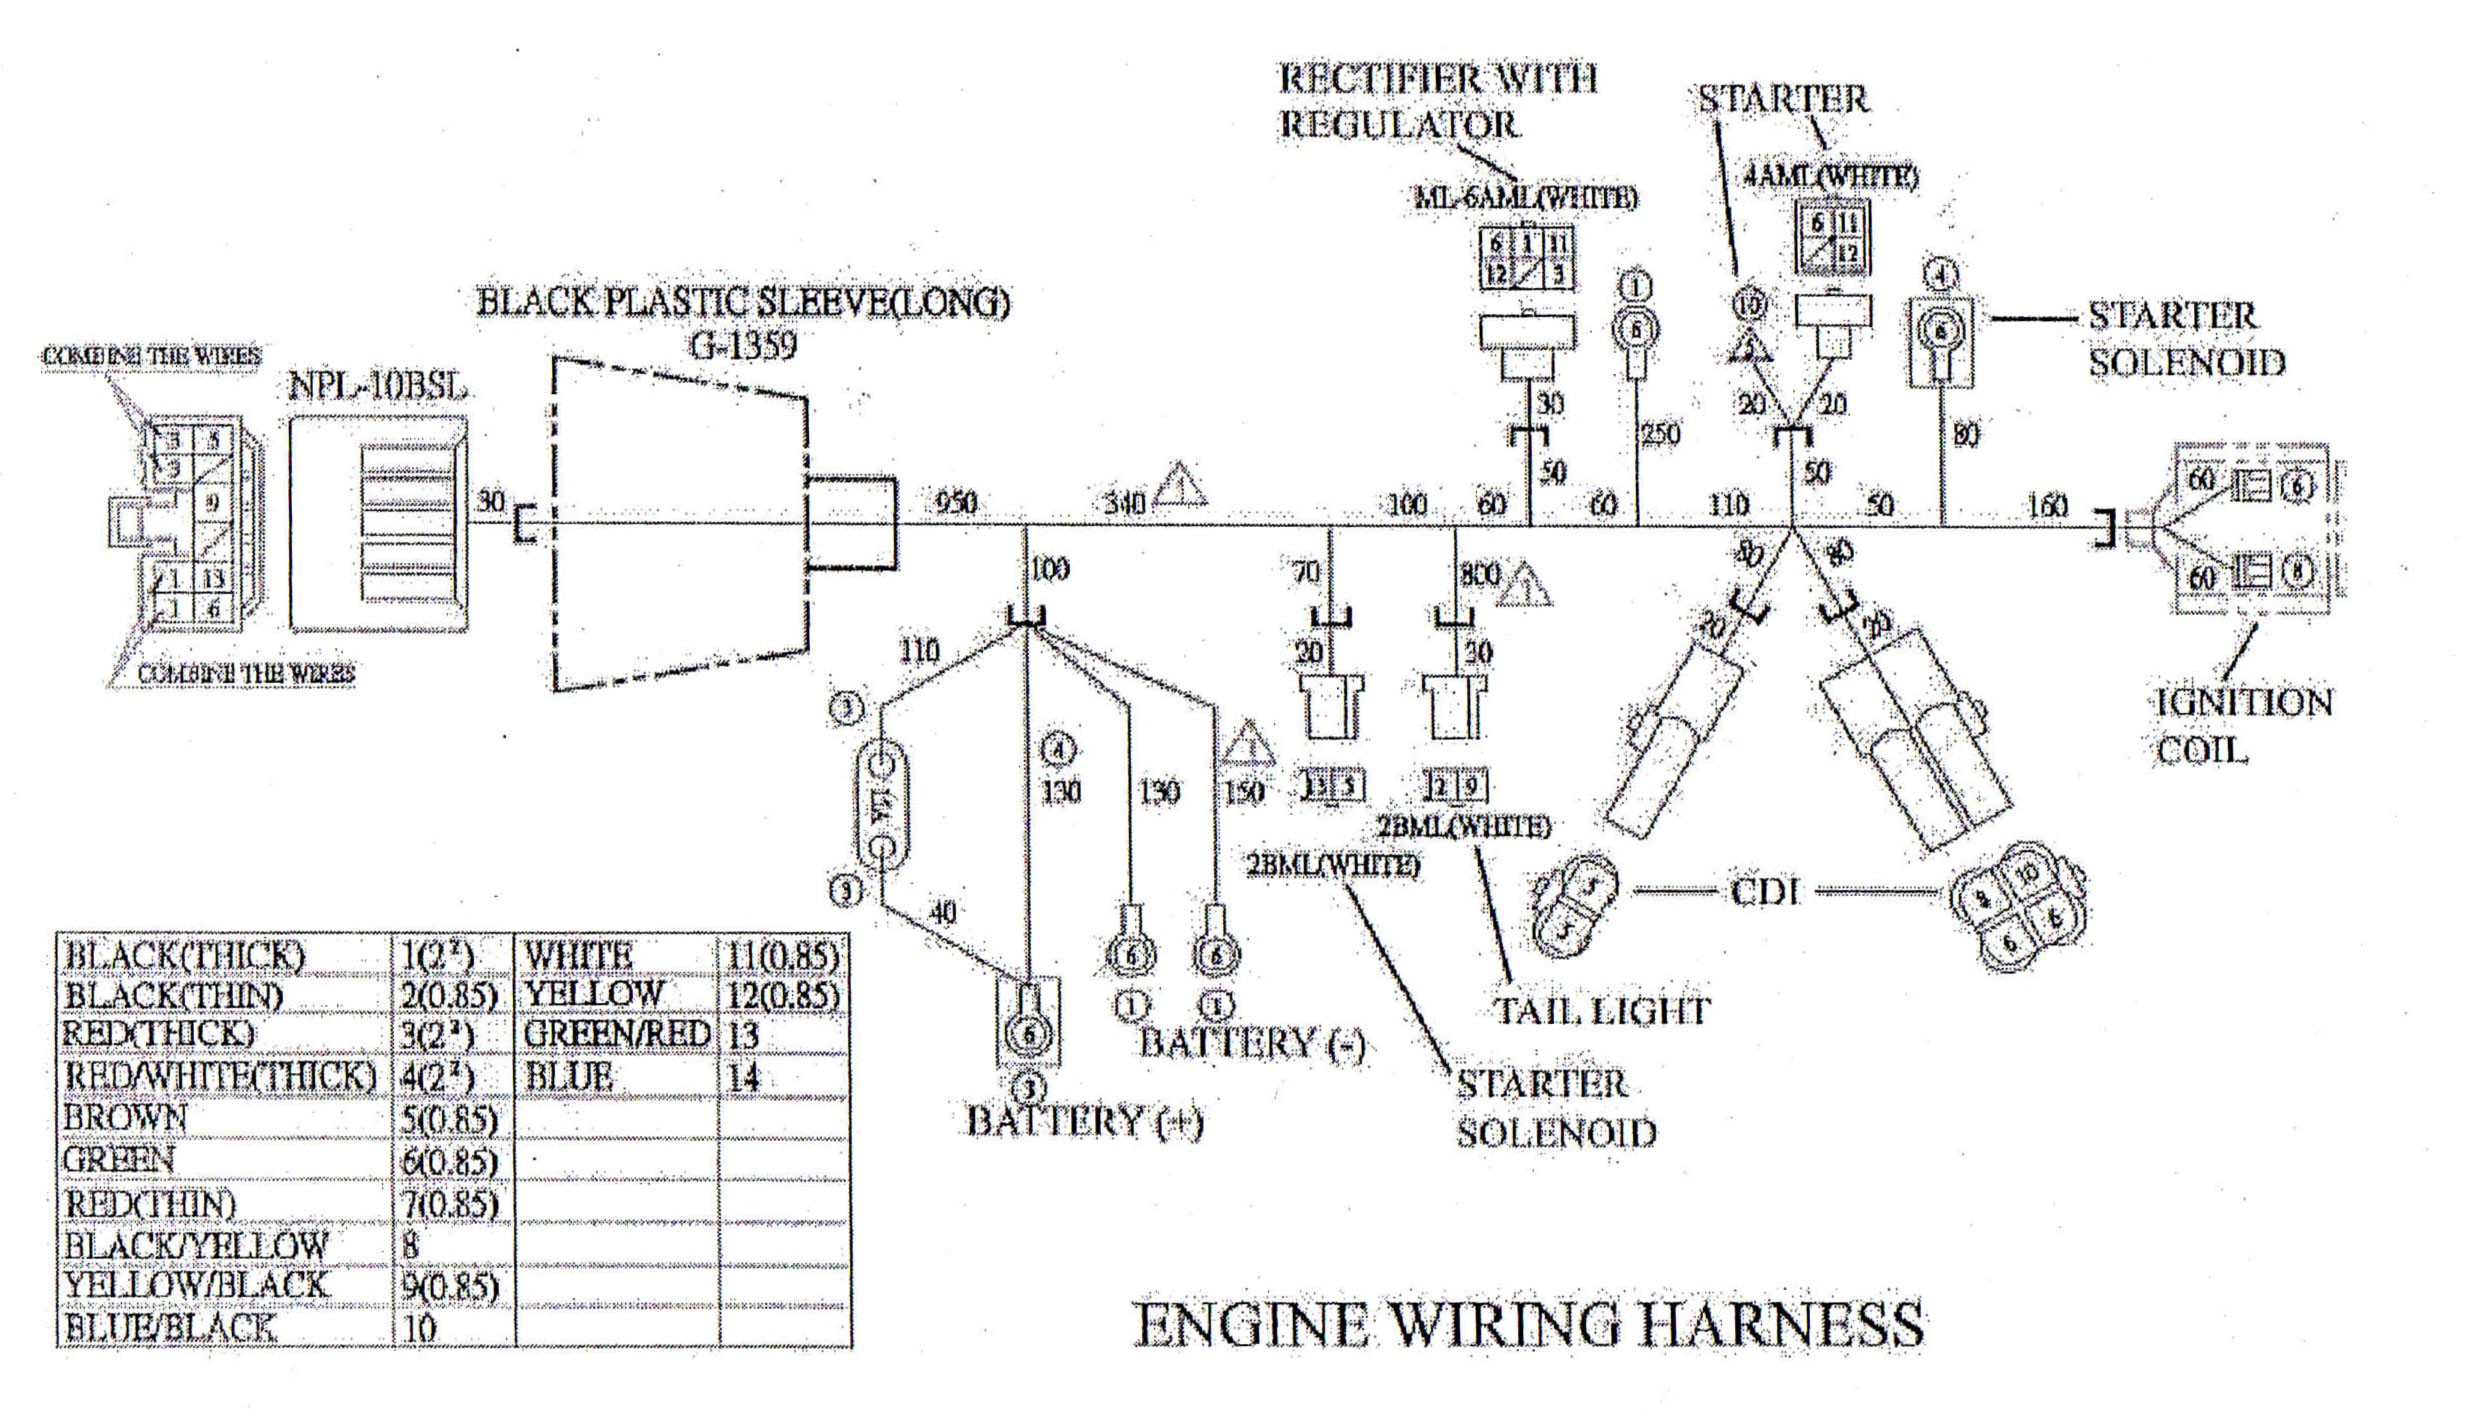 Gy6 Engine Wiring Diagram Engine Wiring Harness for Yerf Dog Cuvs Of Gy6 Engine Wiring Diagram